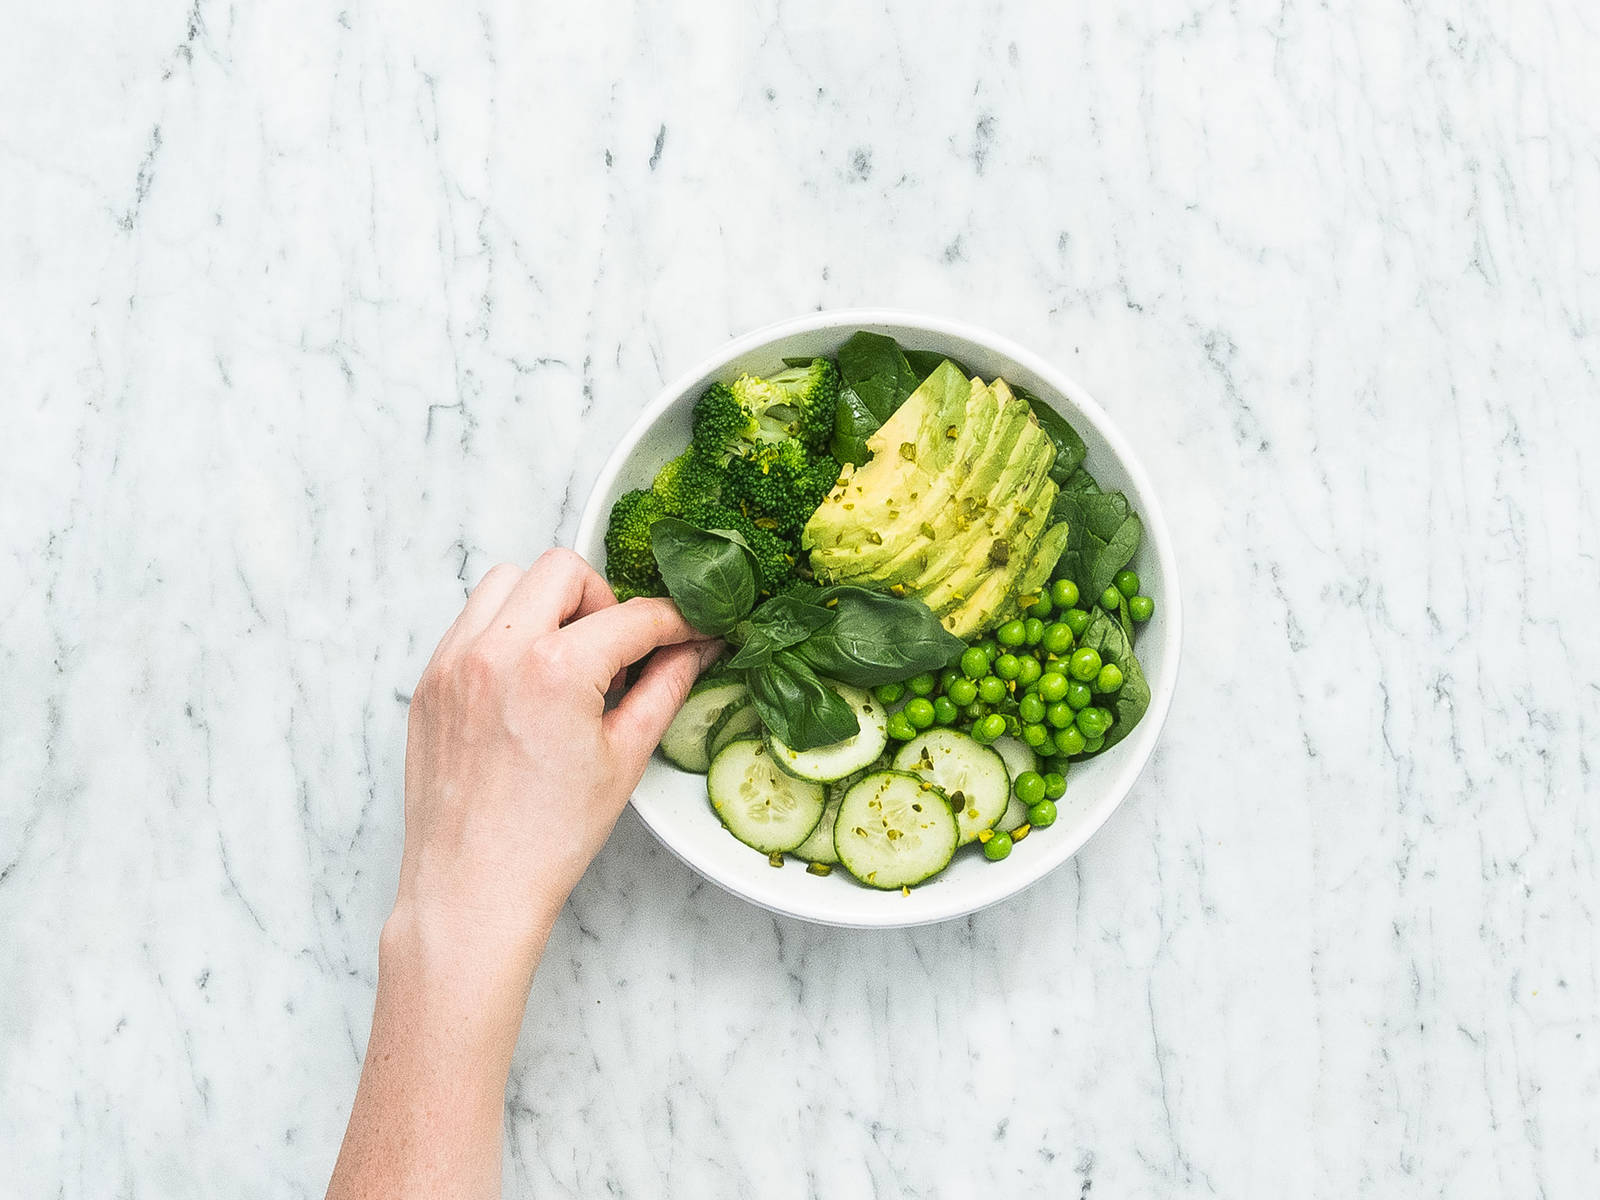 Arrange spinach, broccoli, cucumber, peas, and avocado in bowls. Garnish with basil and chopped pistachios and drizzle avocado dressing on top. Enjoy!